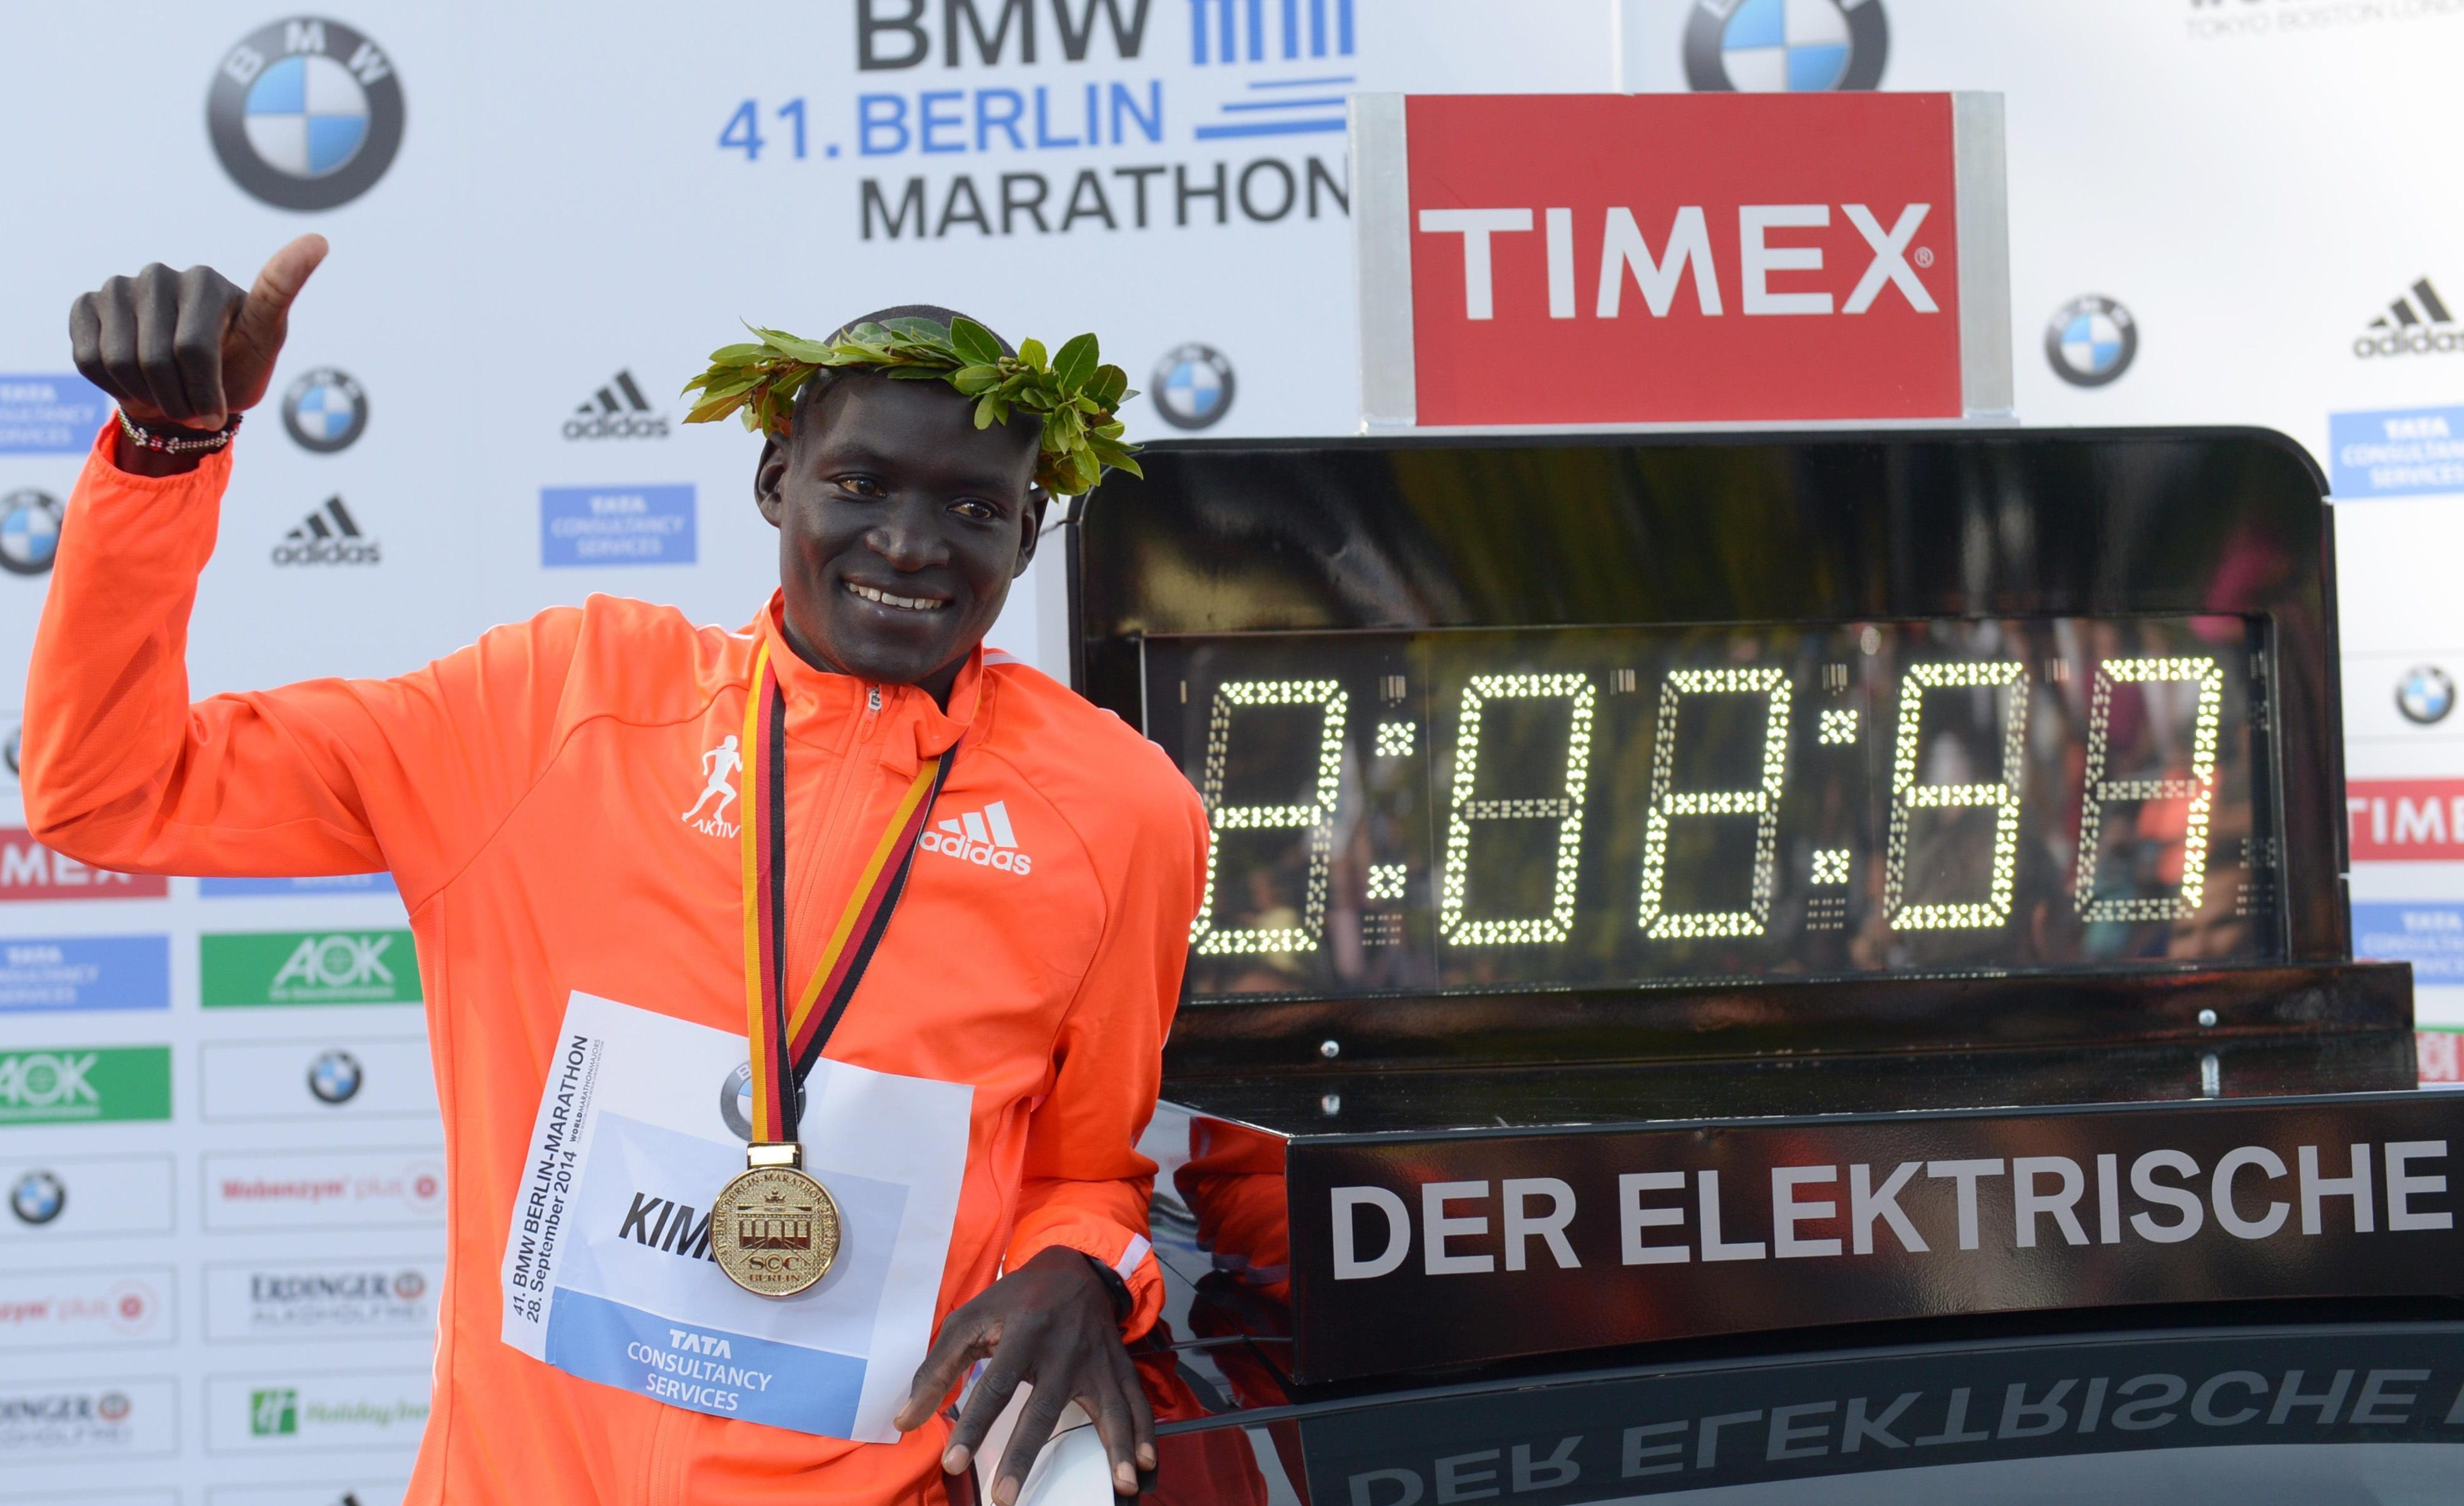 Dennis Kimetto became the men's world record holder in Berlin in 2014